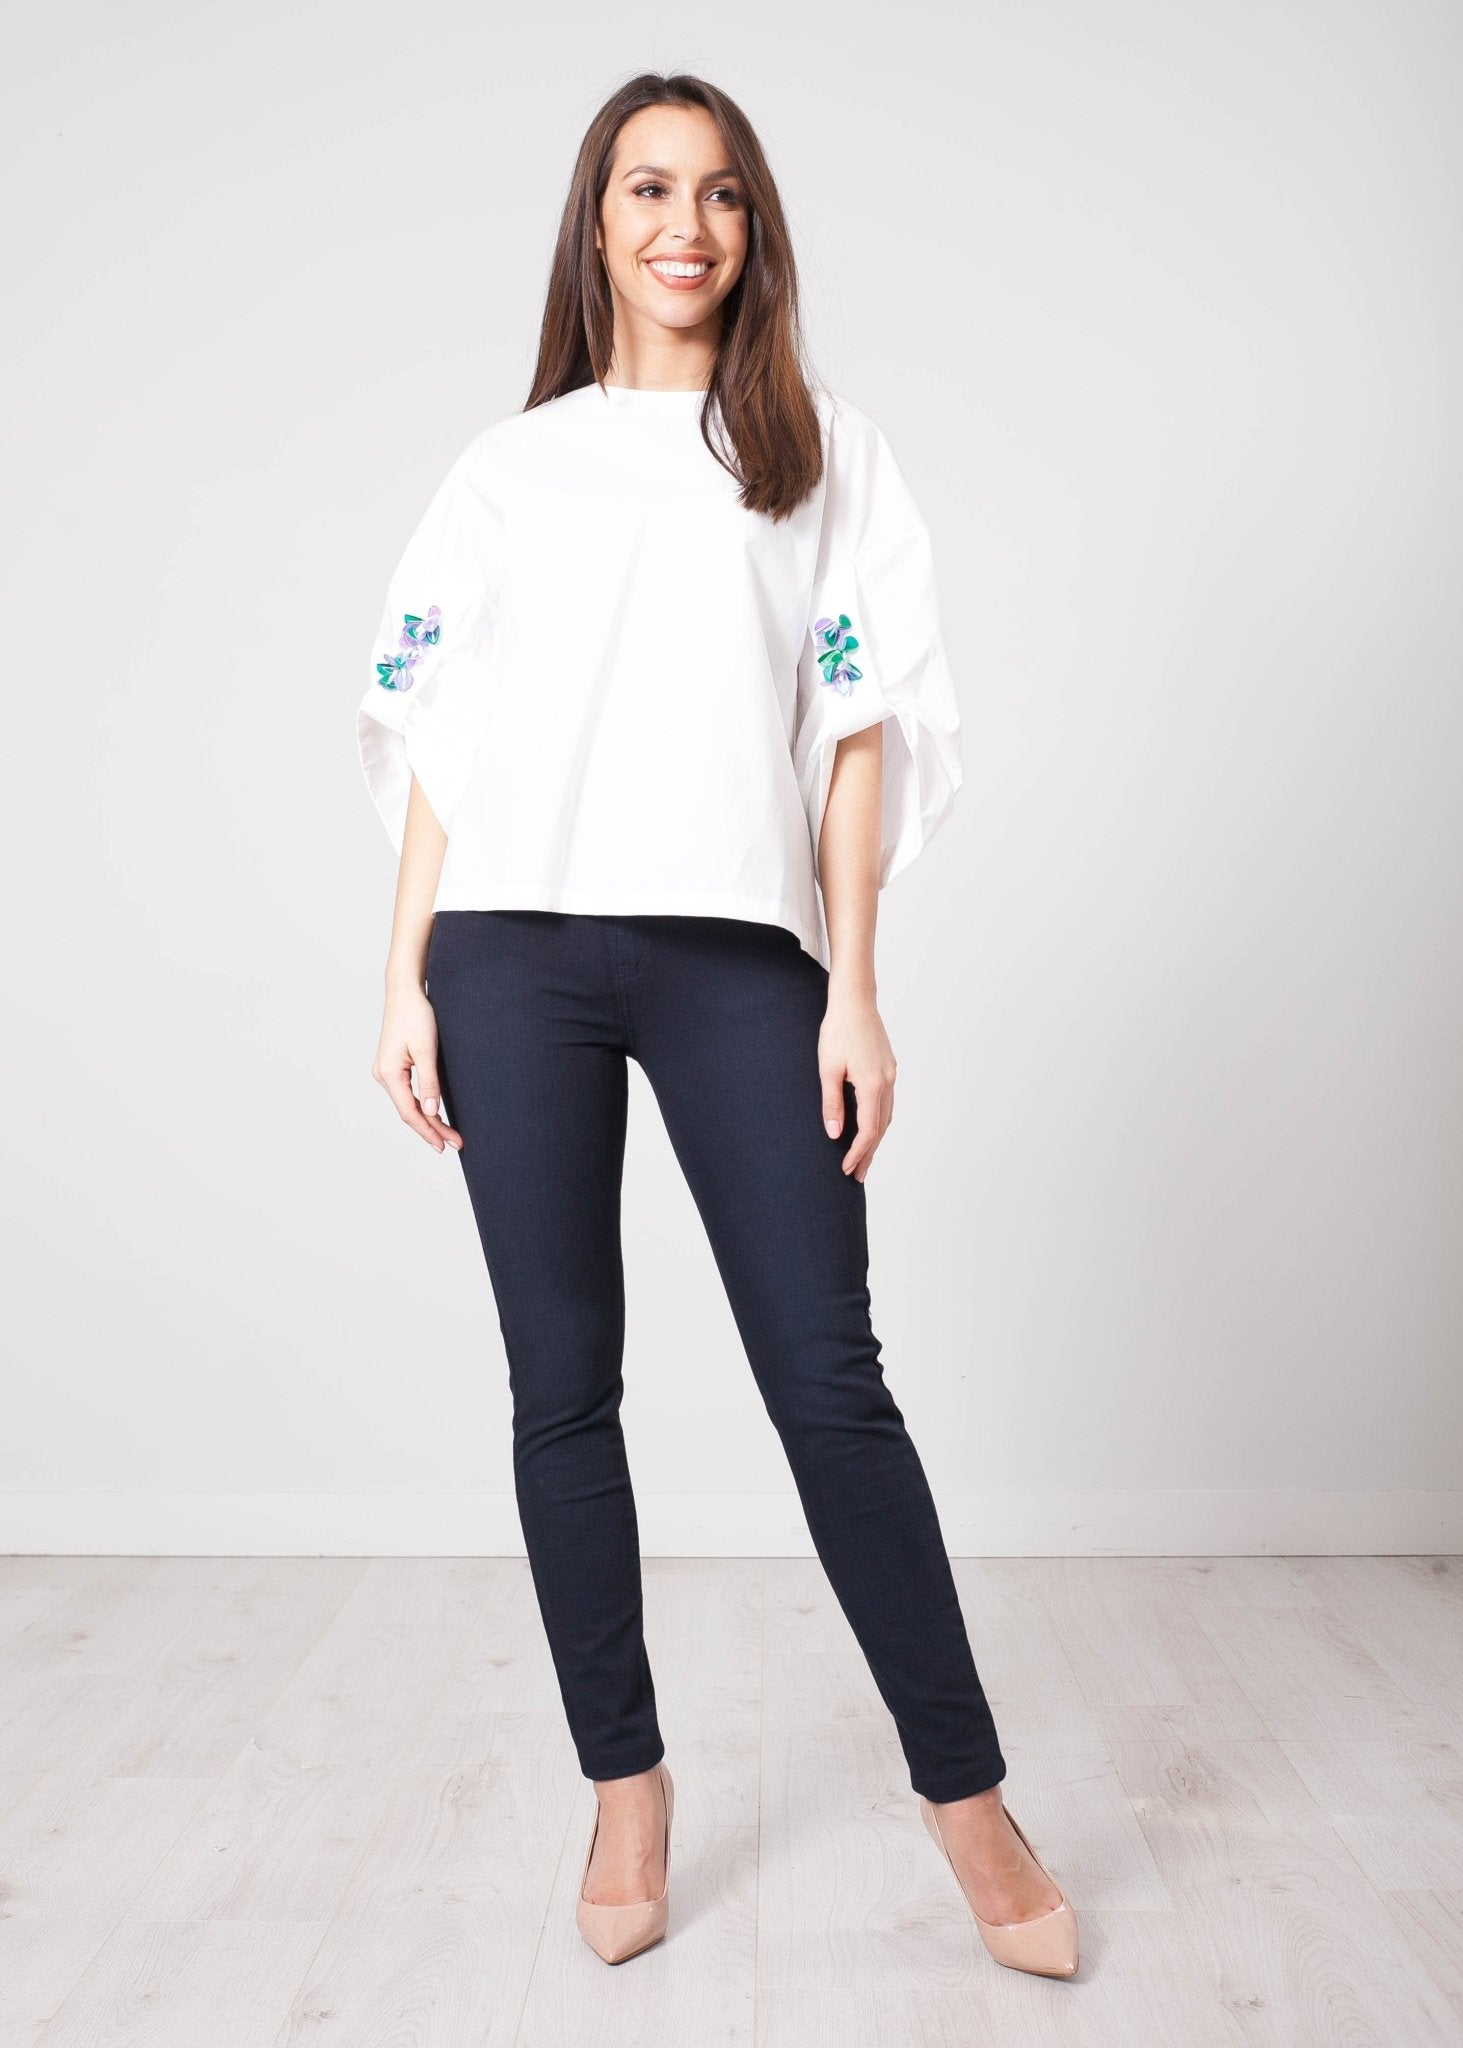 Eva White Embellished Top - The Walk in Wardrobe